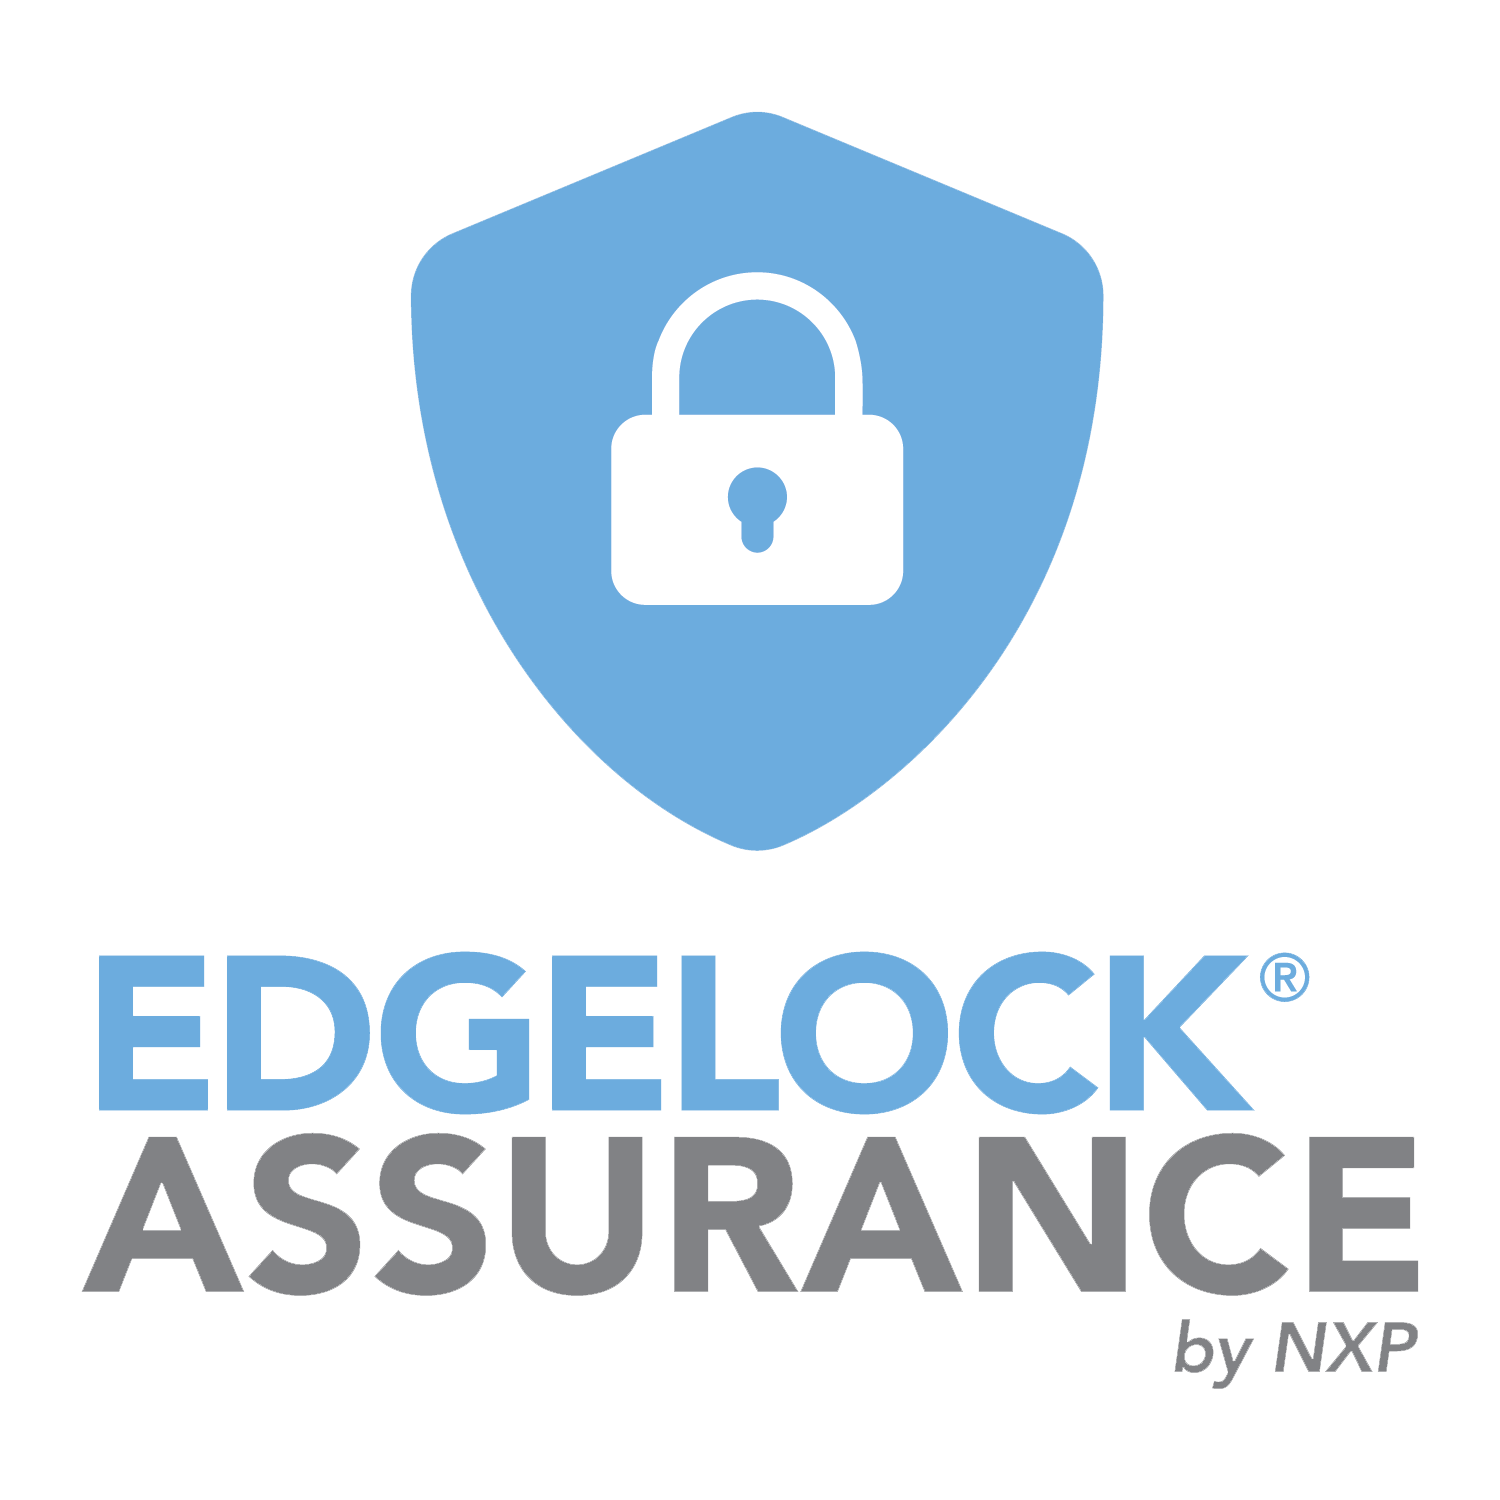 EdgeLock Assurance Program